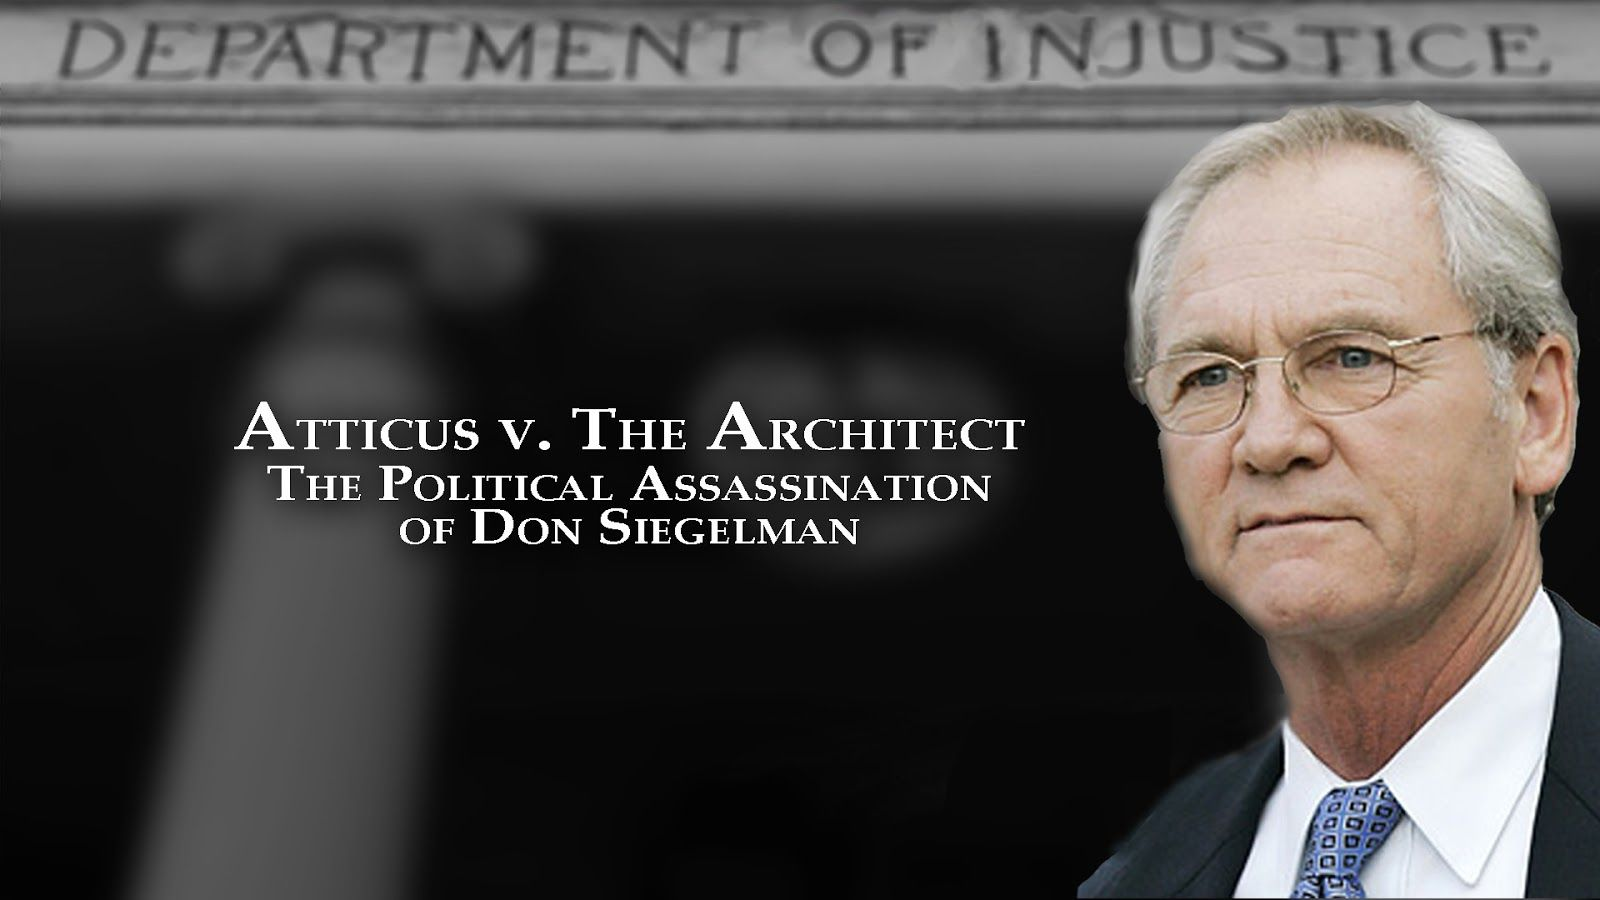 Don Siegelman film poster atticus v architect